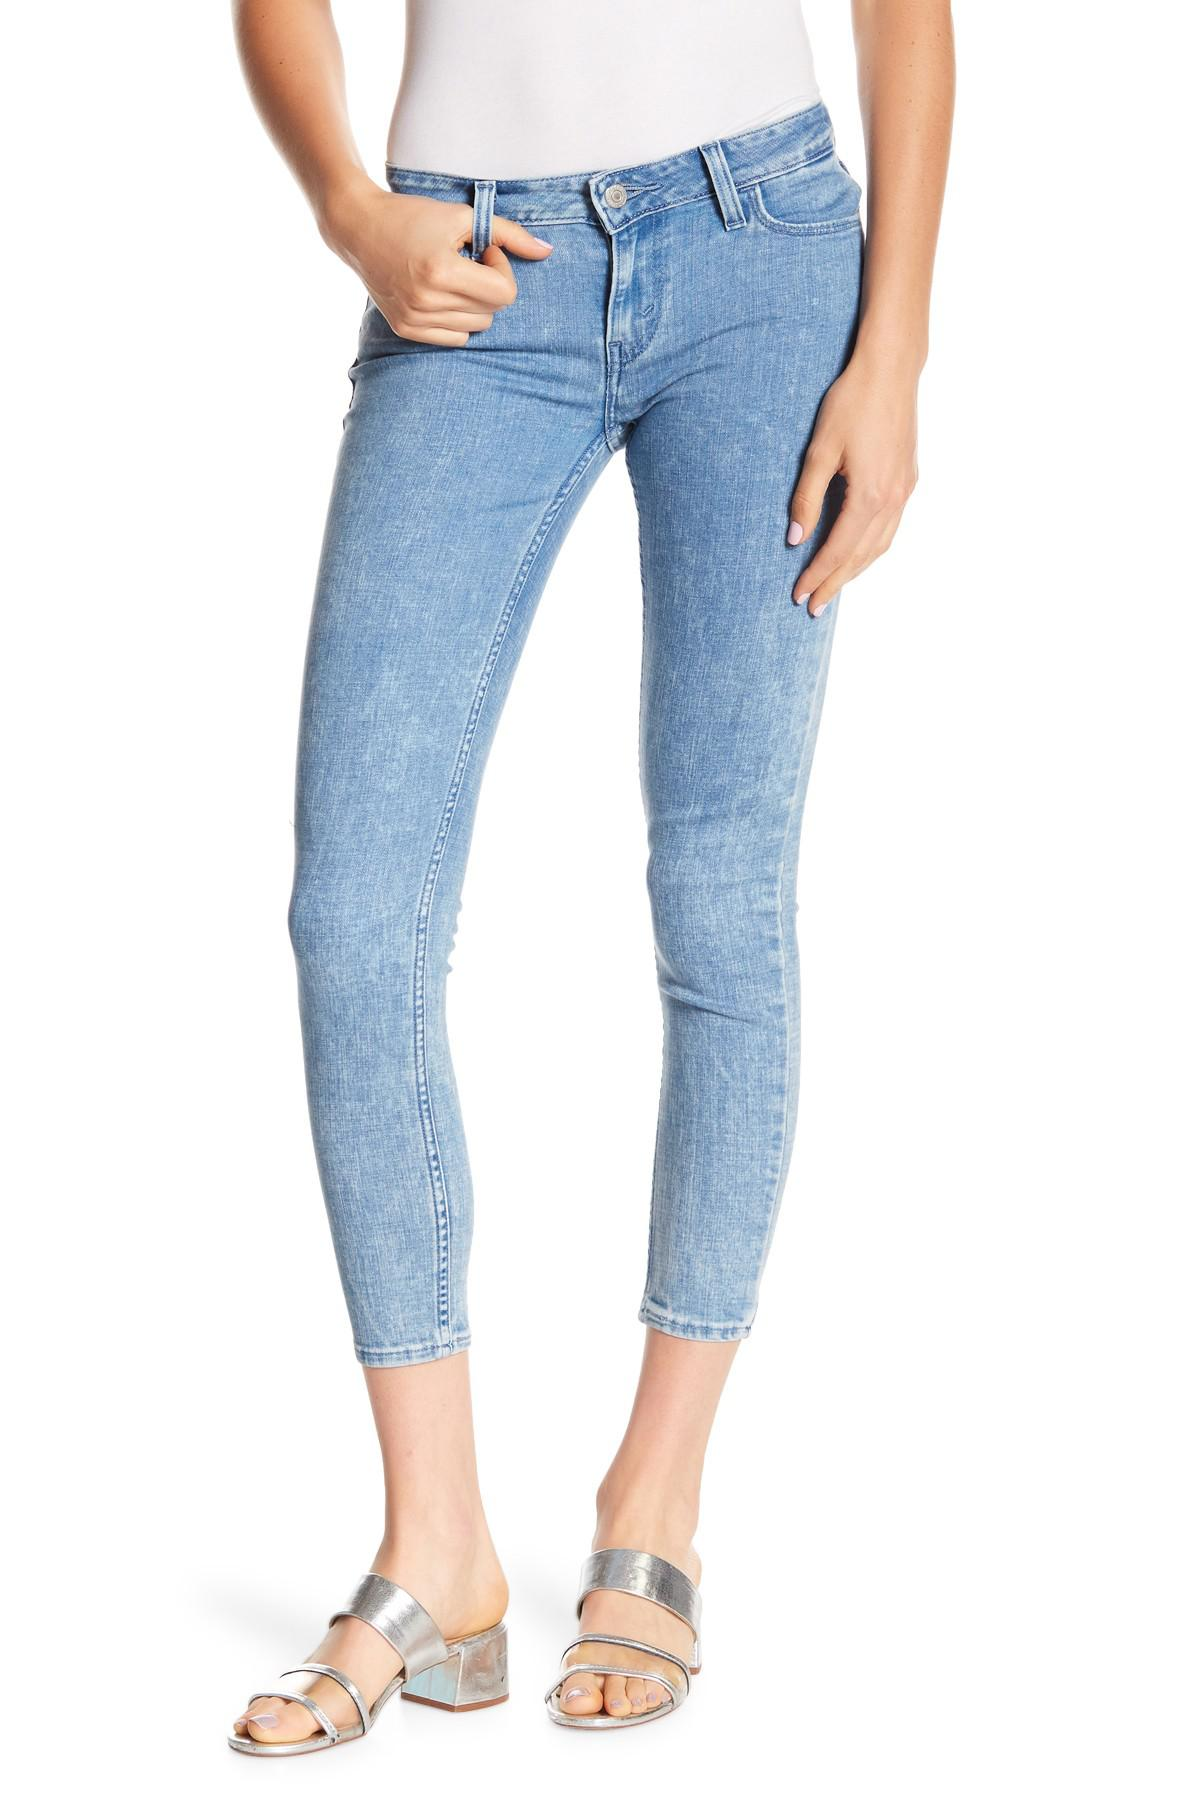 Levi'S 535 Styled Super Skinny Ankle Jeans in Blue